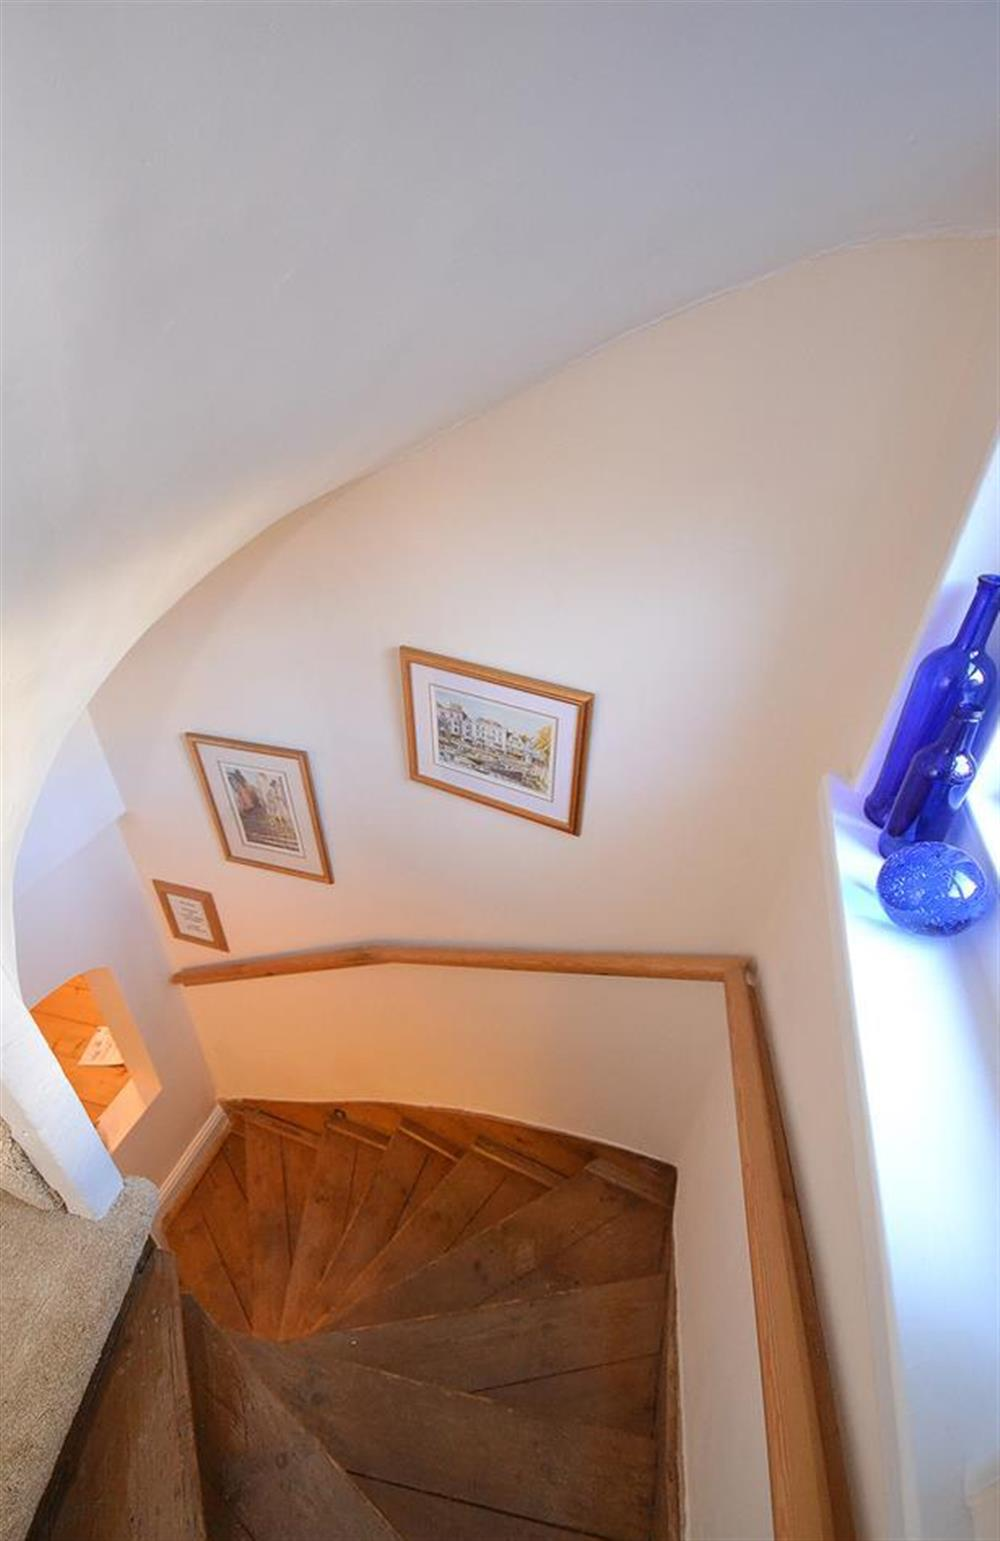 (photo 2) at Grants Cottage, Dartmouth